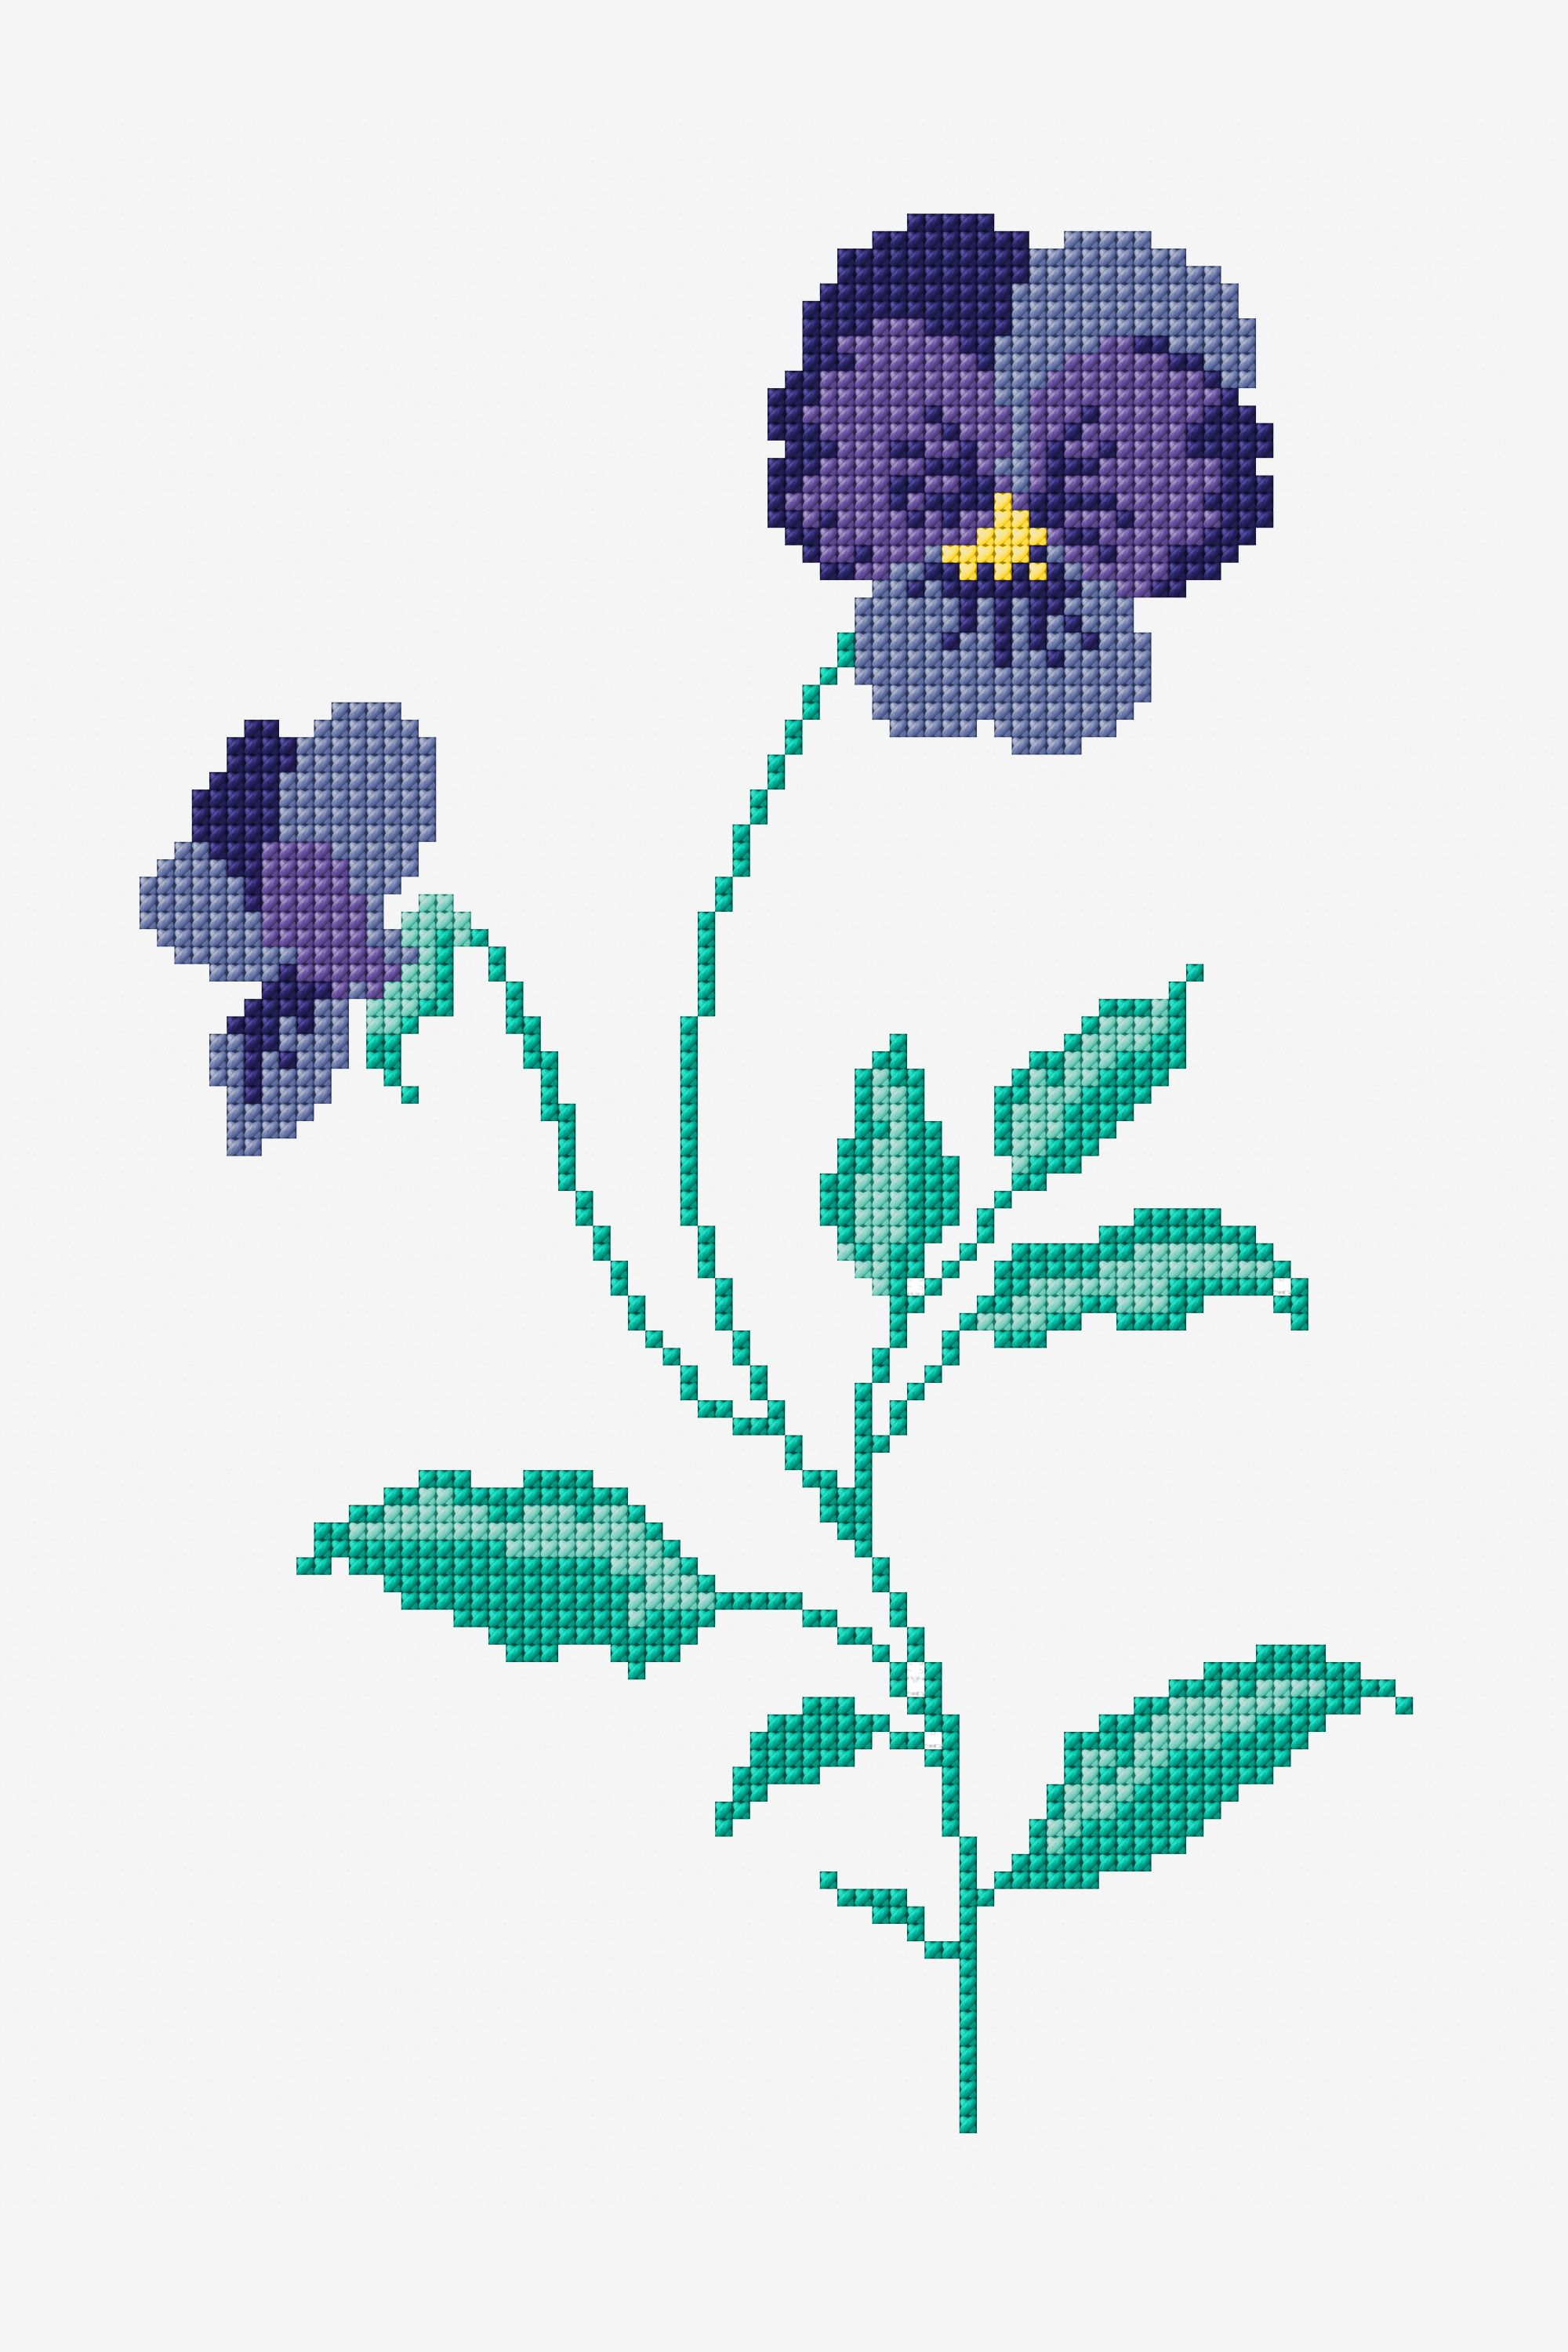 FREE PATTERNS Pansies www.dmc.com